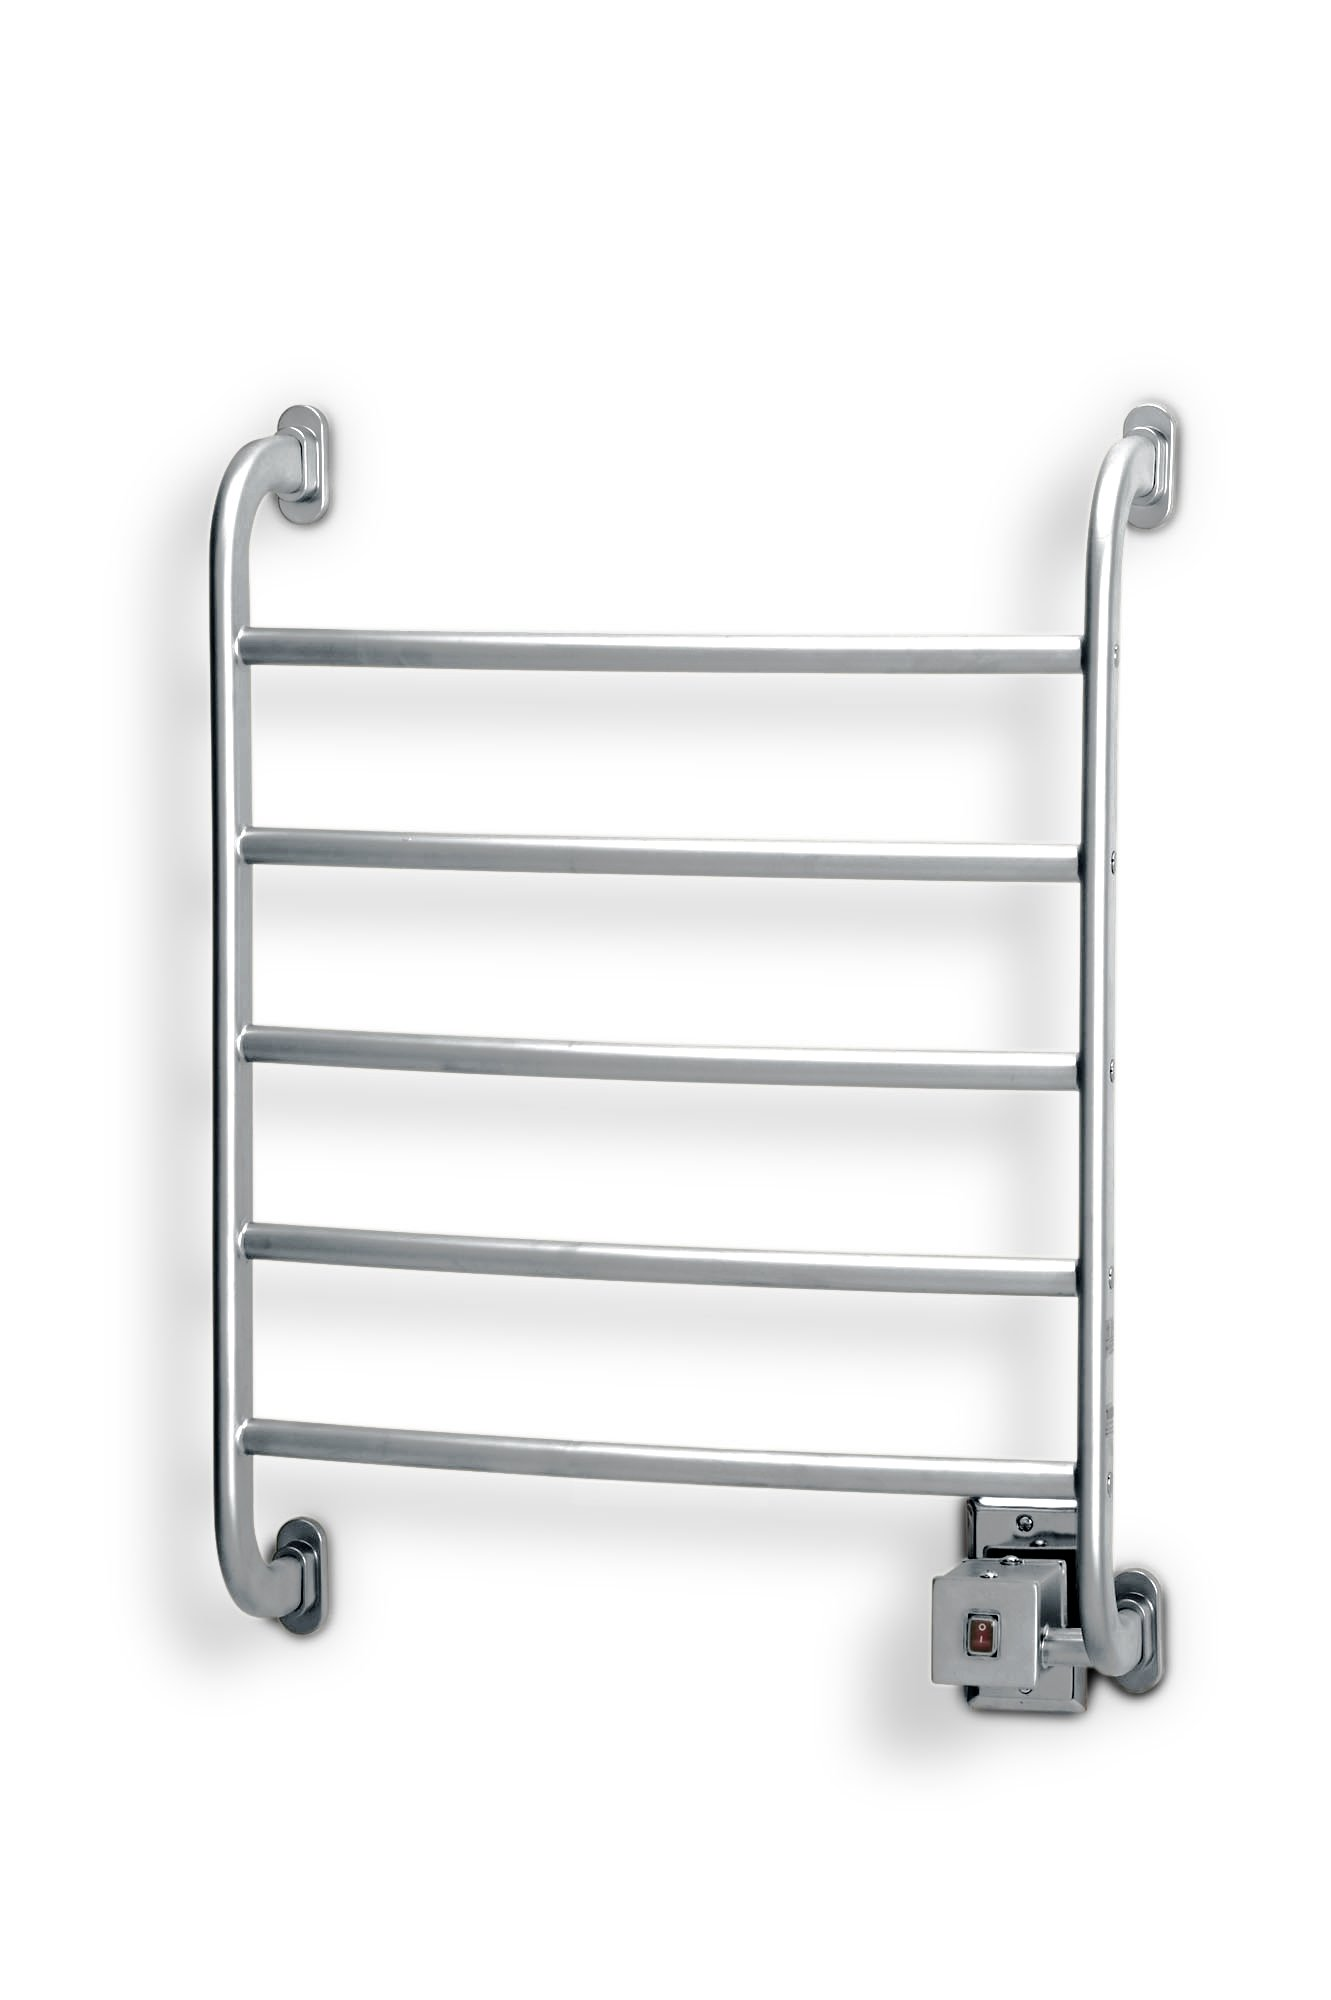 Warmrails HSRC Regent 25.25-Inch Wall Mounted Towel Warmer, Chrome Finish by Warmrails